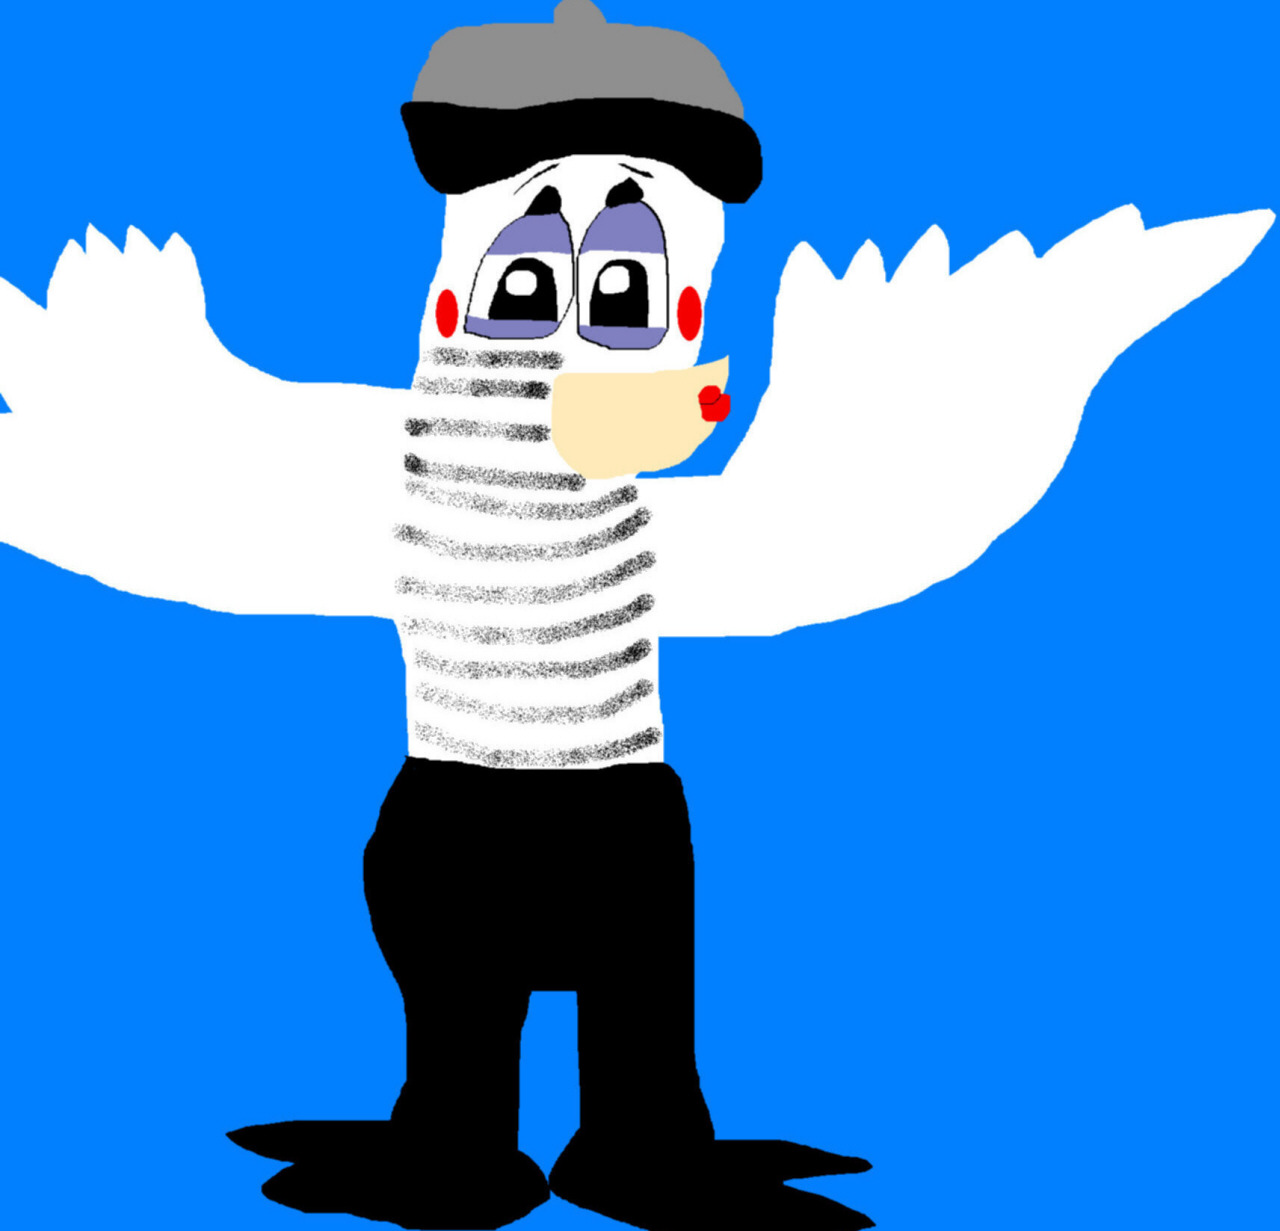 Mime Bird Holding Up An Invisable Wall  MS Paint^^ by Falconlobo